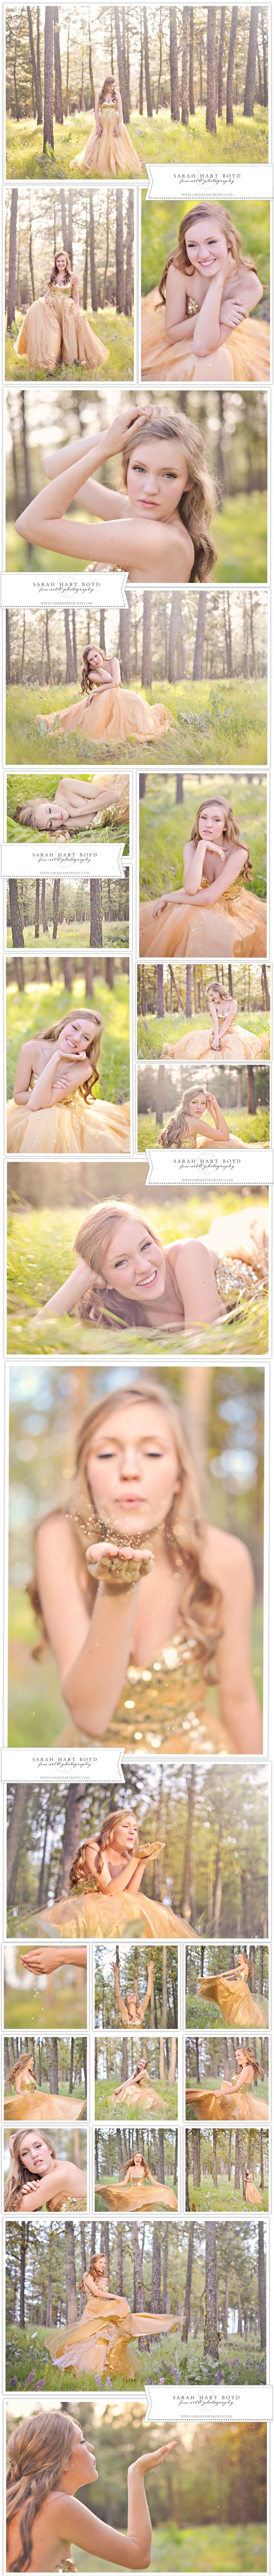 Maddie | Whimsical Dress Session | Chelan, WA Senior Photographer » sarahhartboyd.com